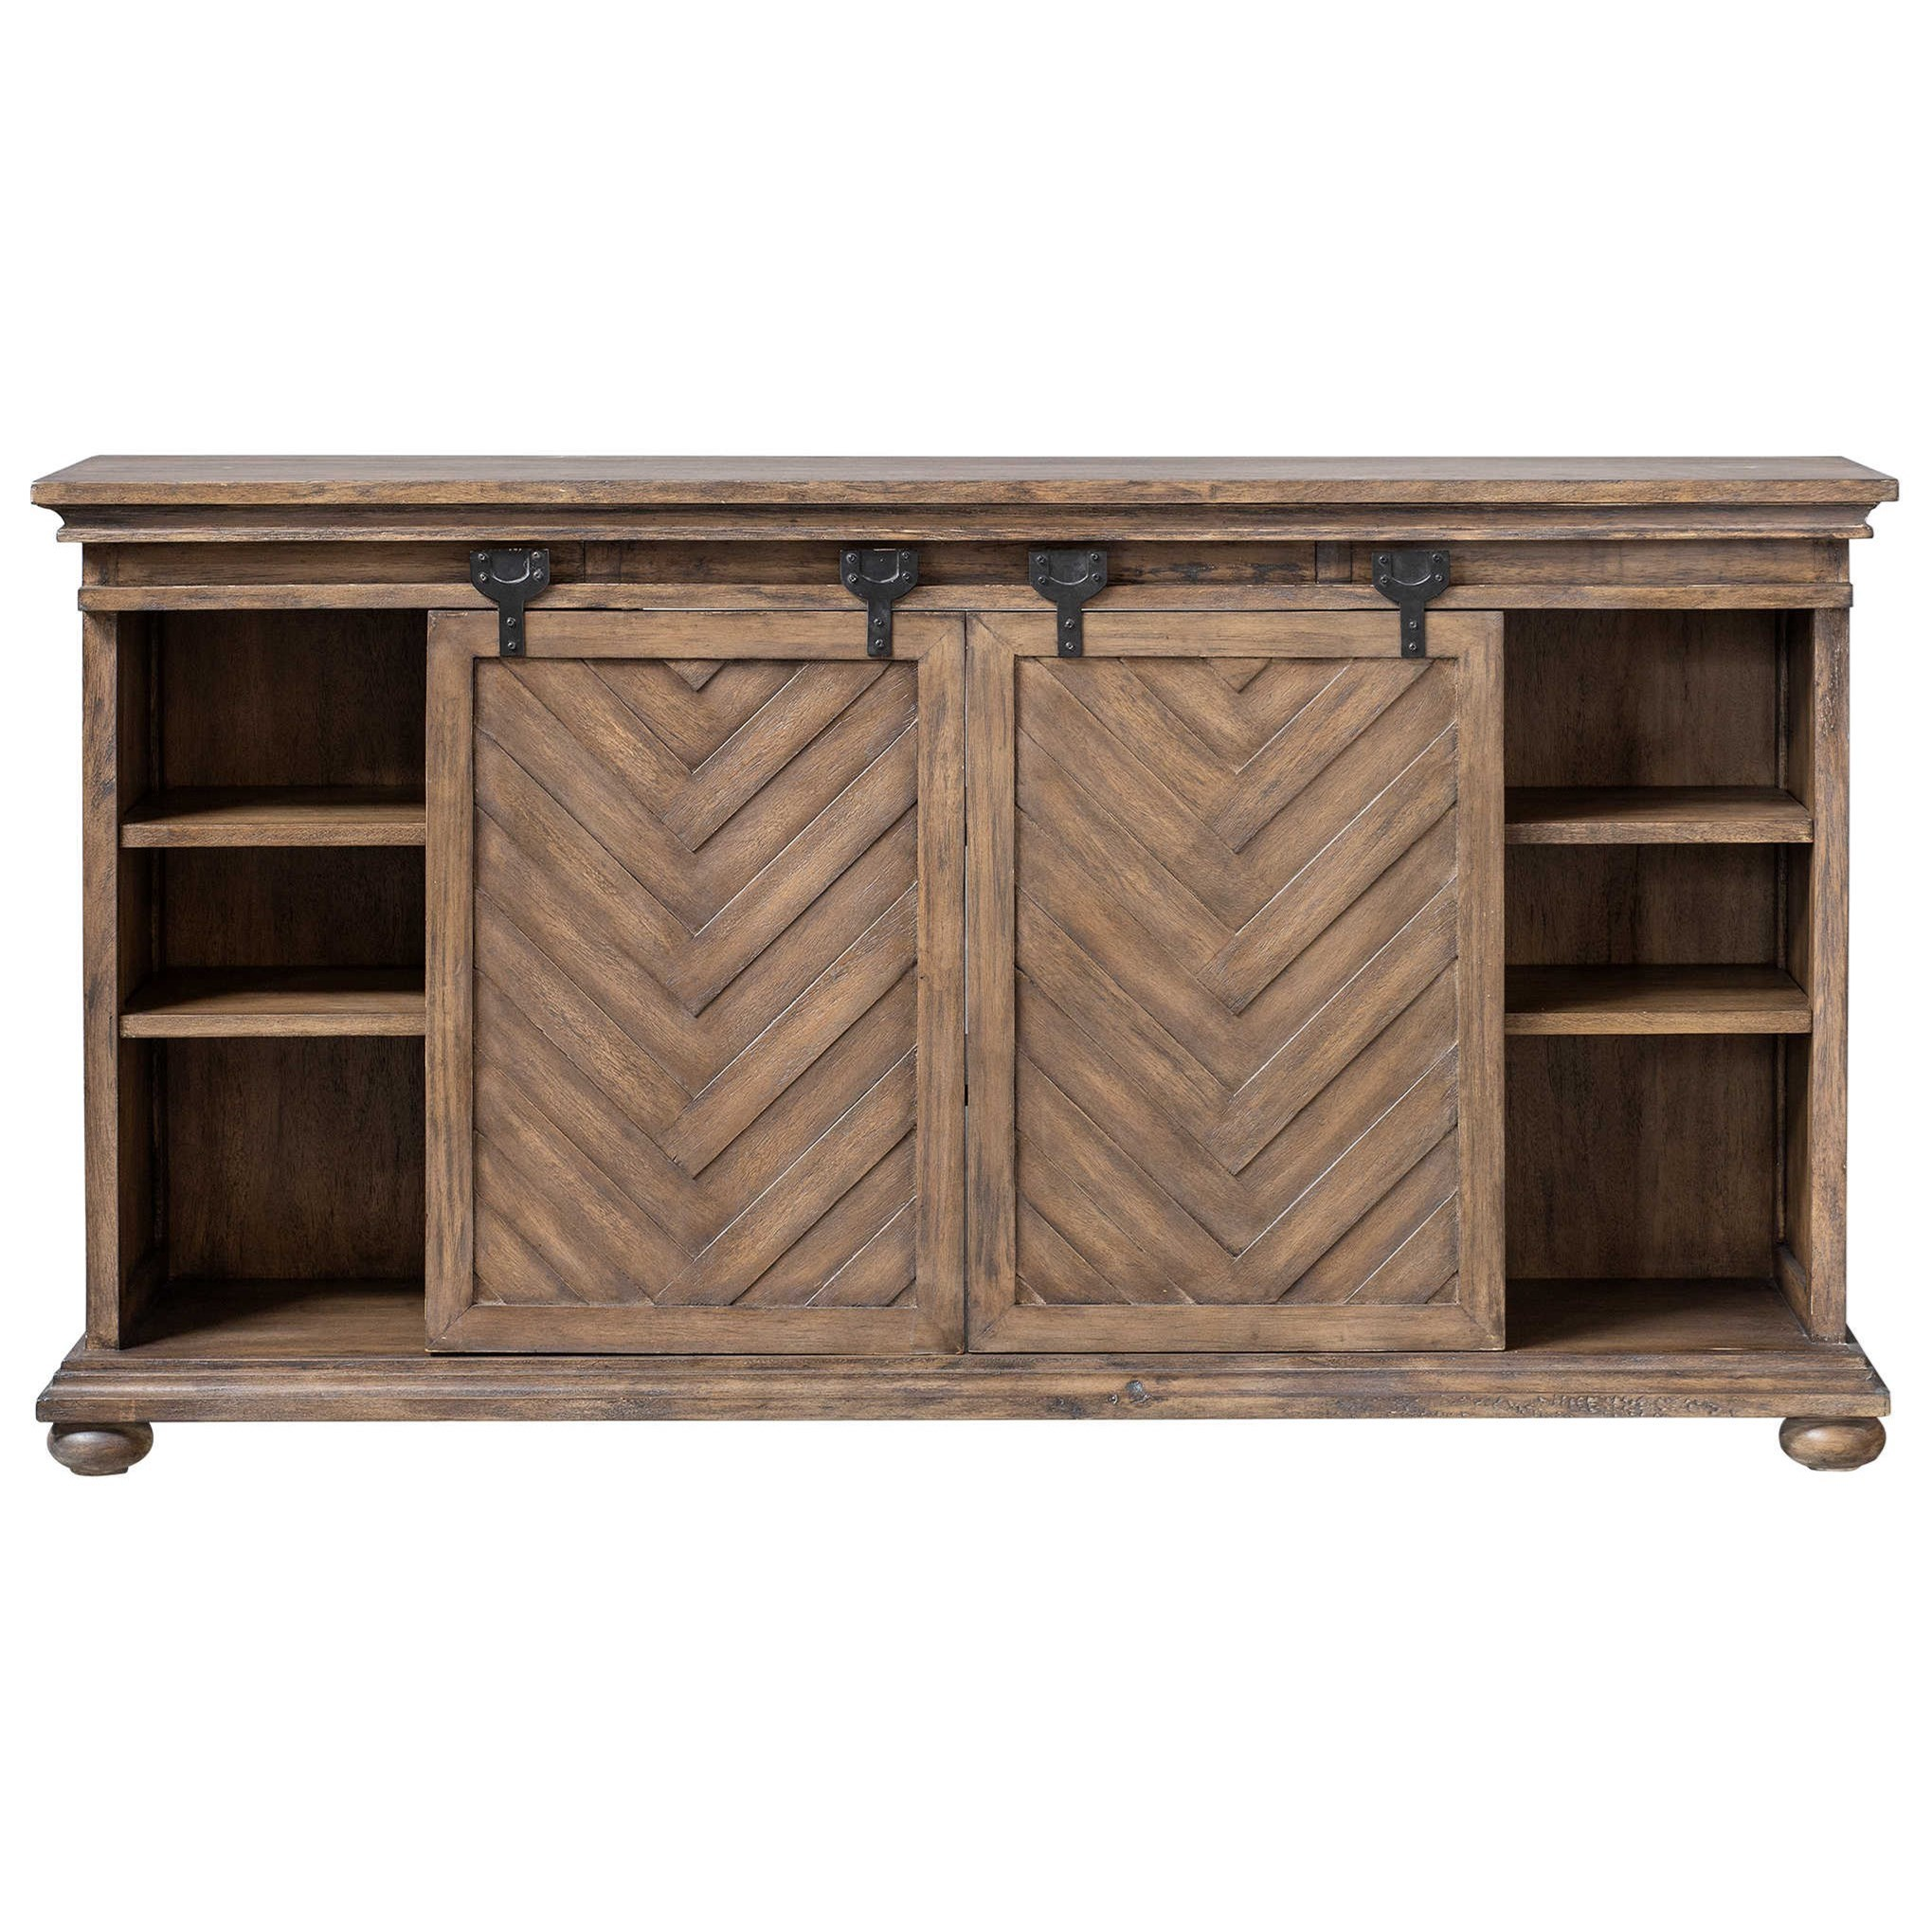 Accent Furniture Primalia Barn Door Media Console by Uttermost at Adcock Furniture